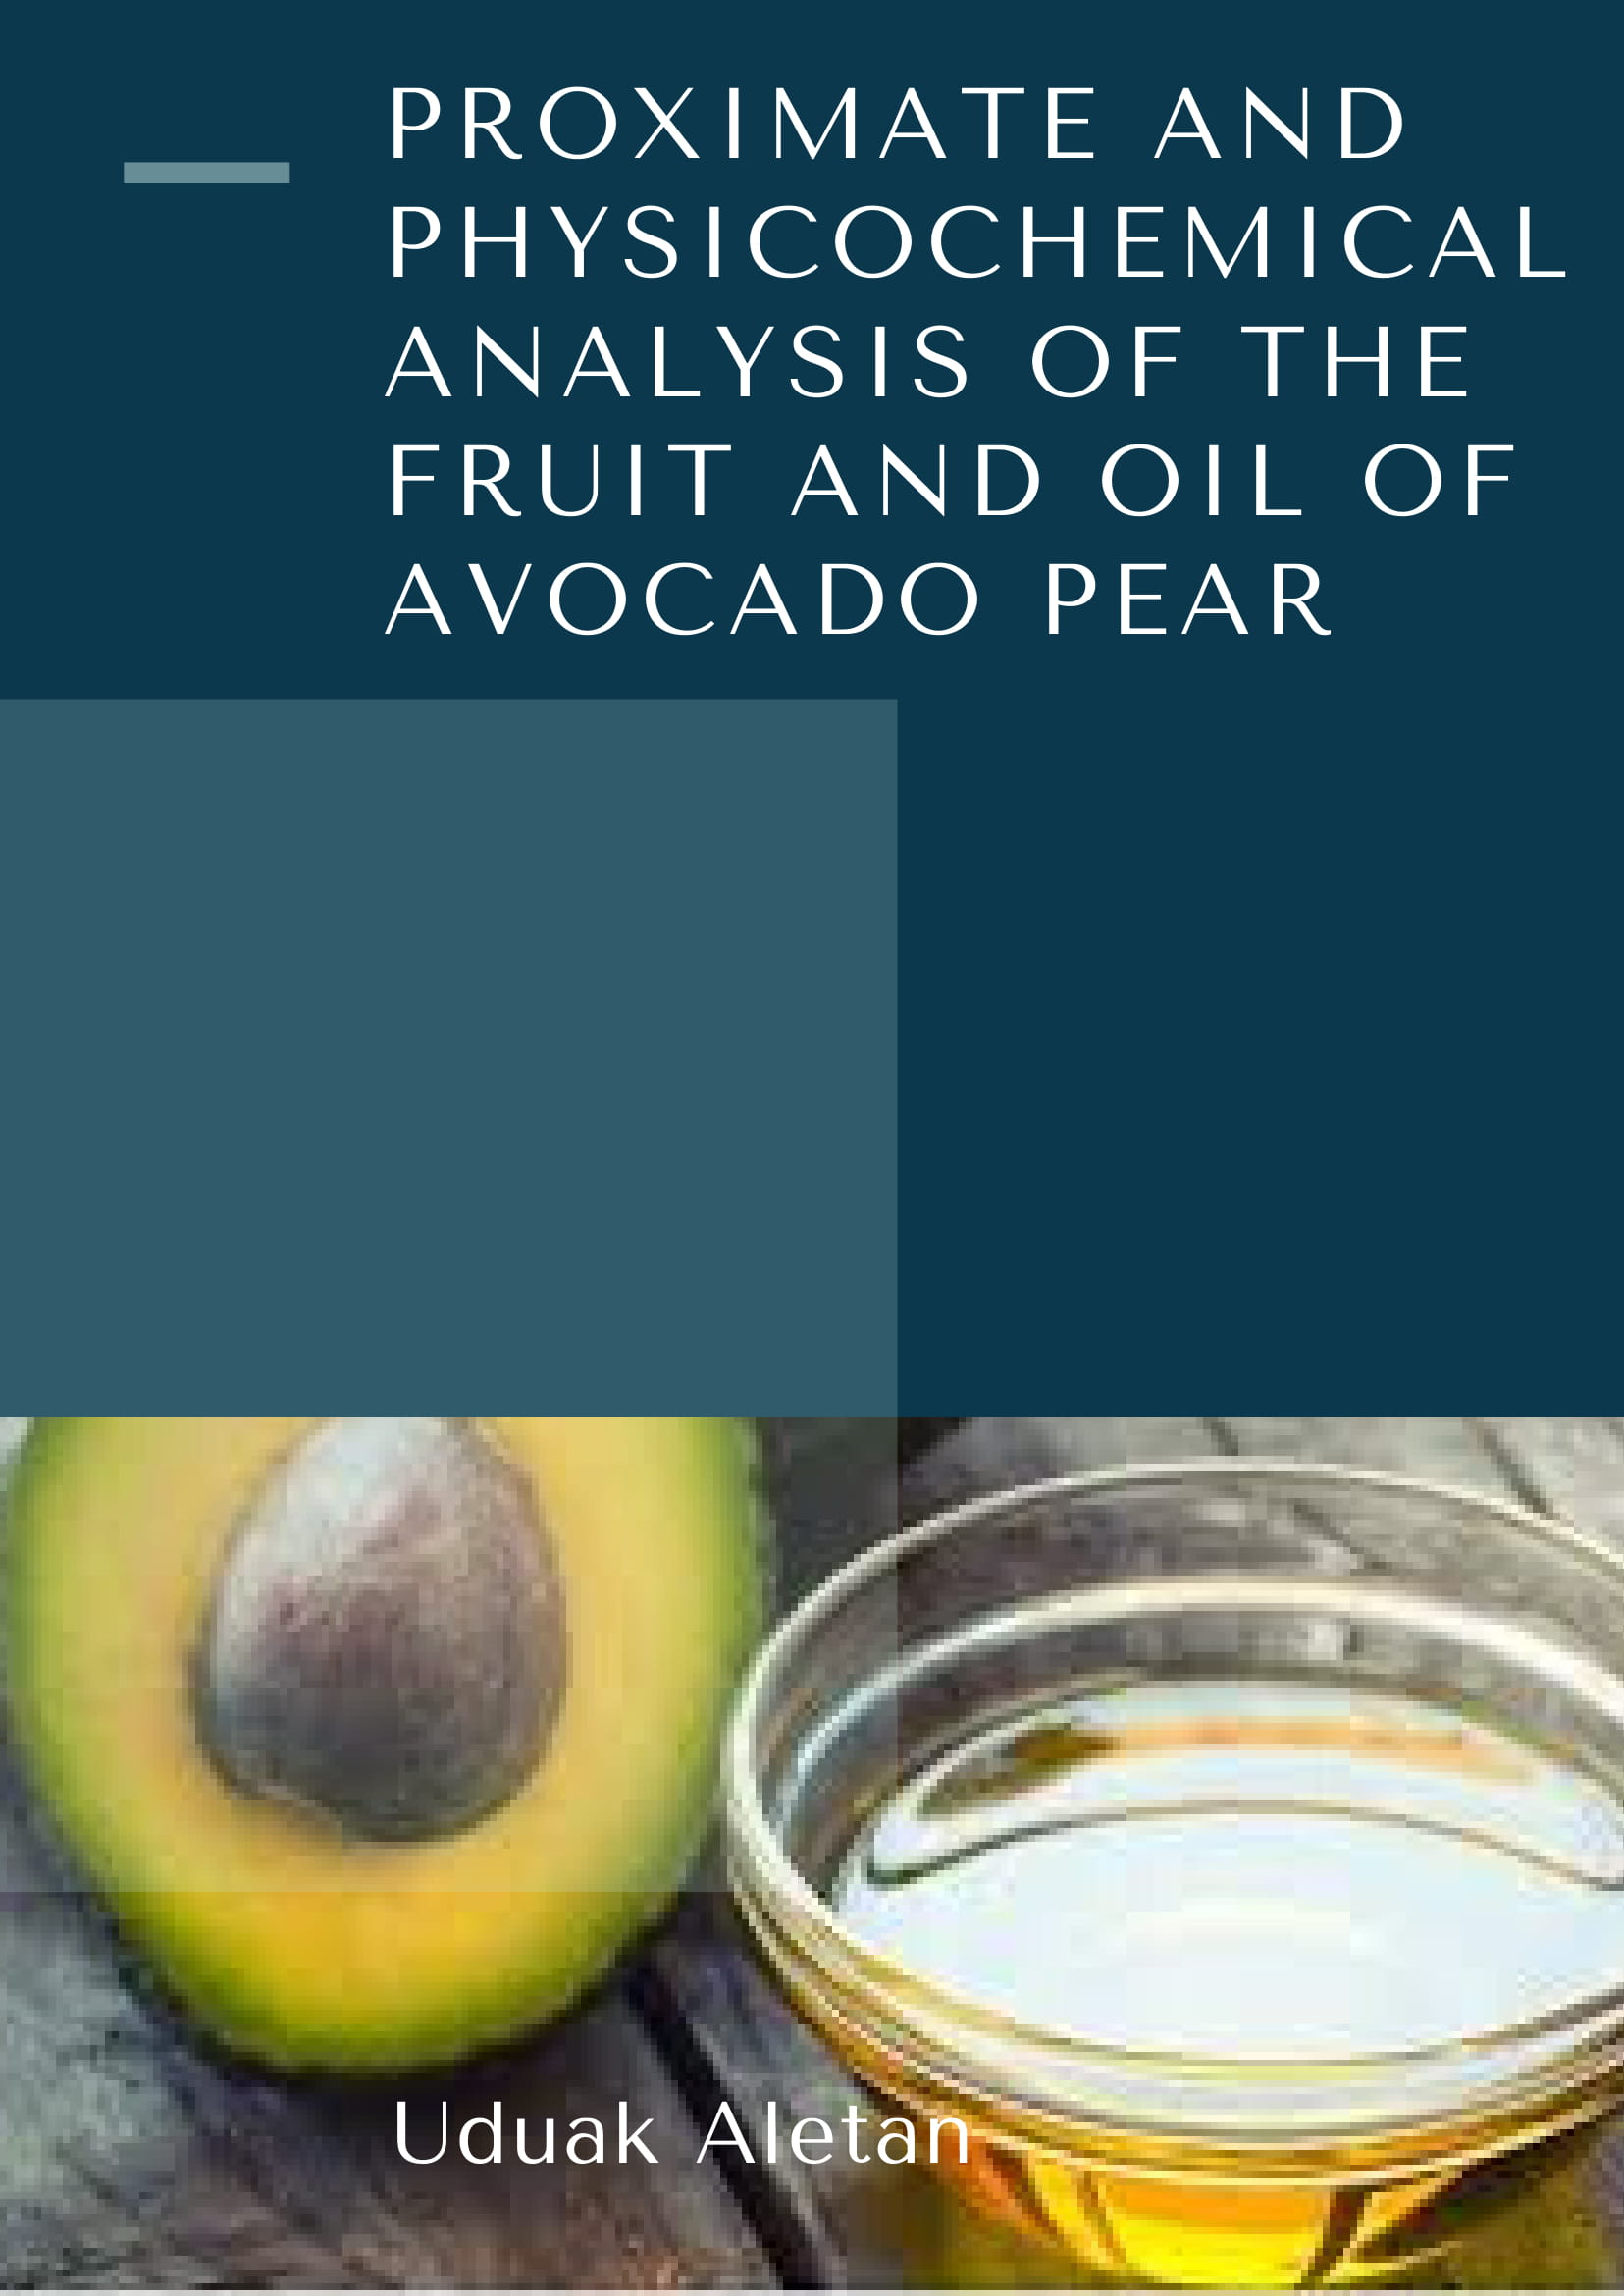 Proximate and Physicochemical Analysis of the Fruit and Oil of Avocado Pear Image